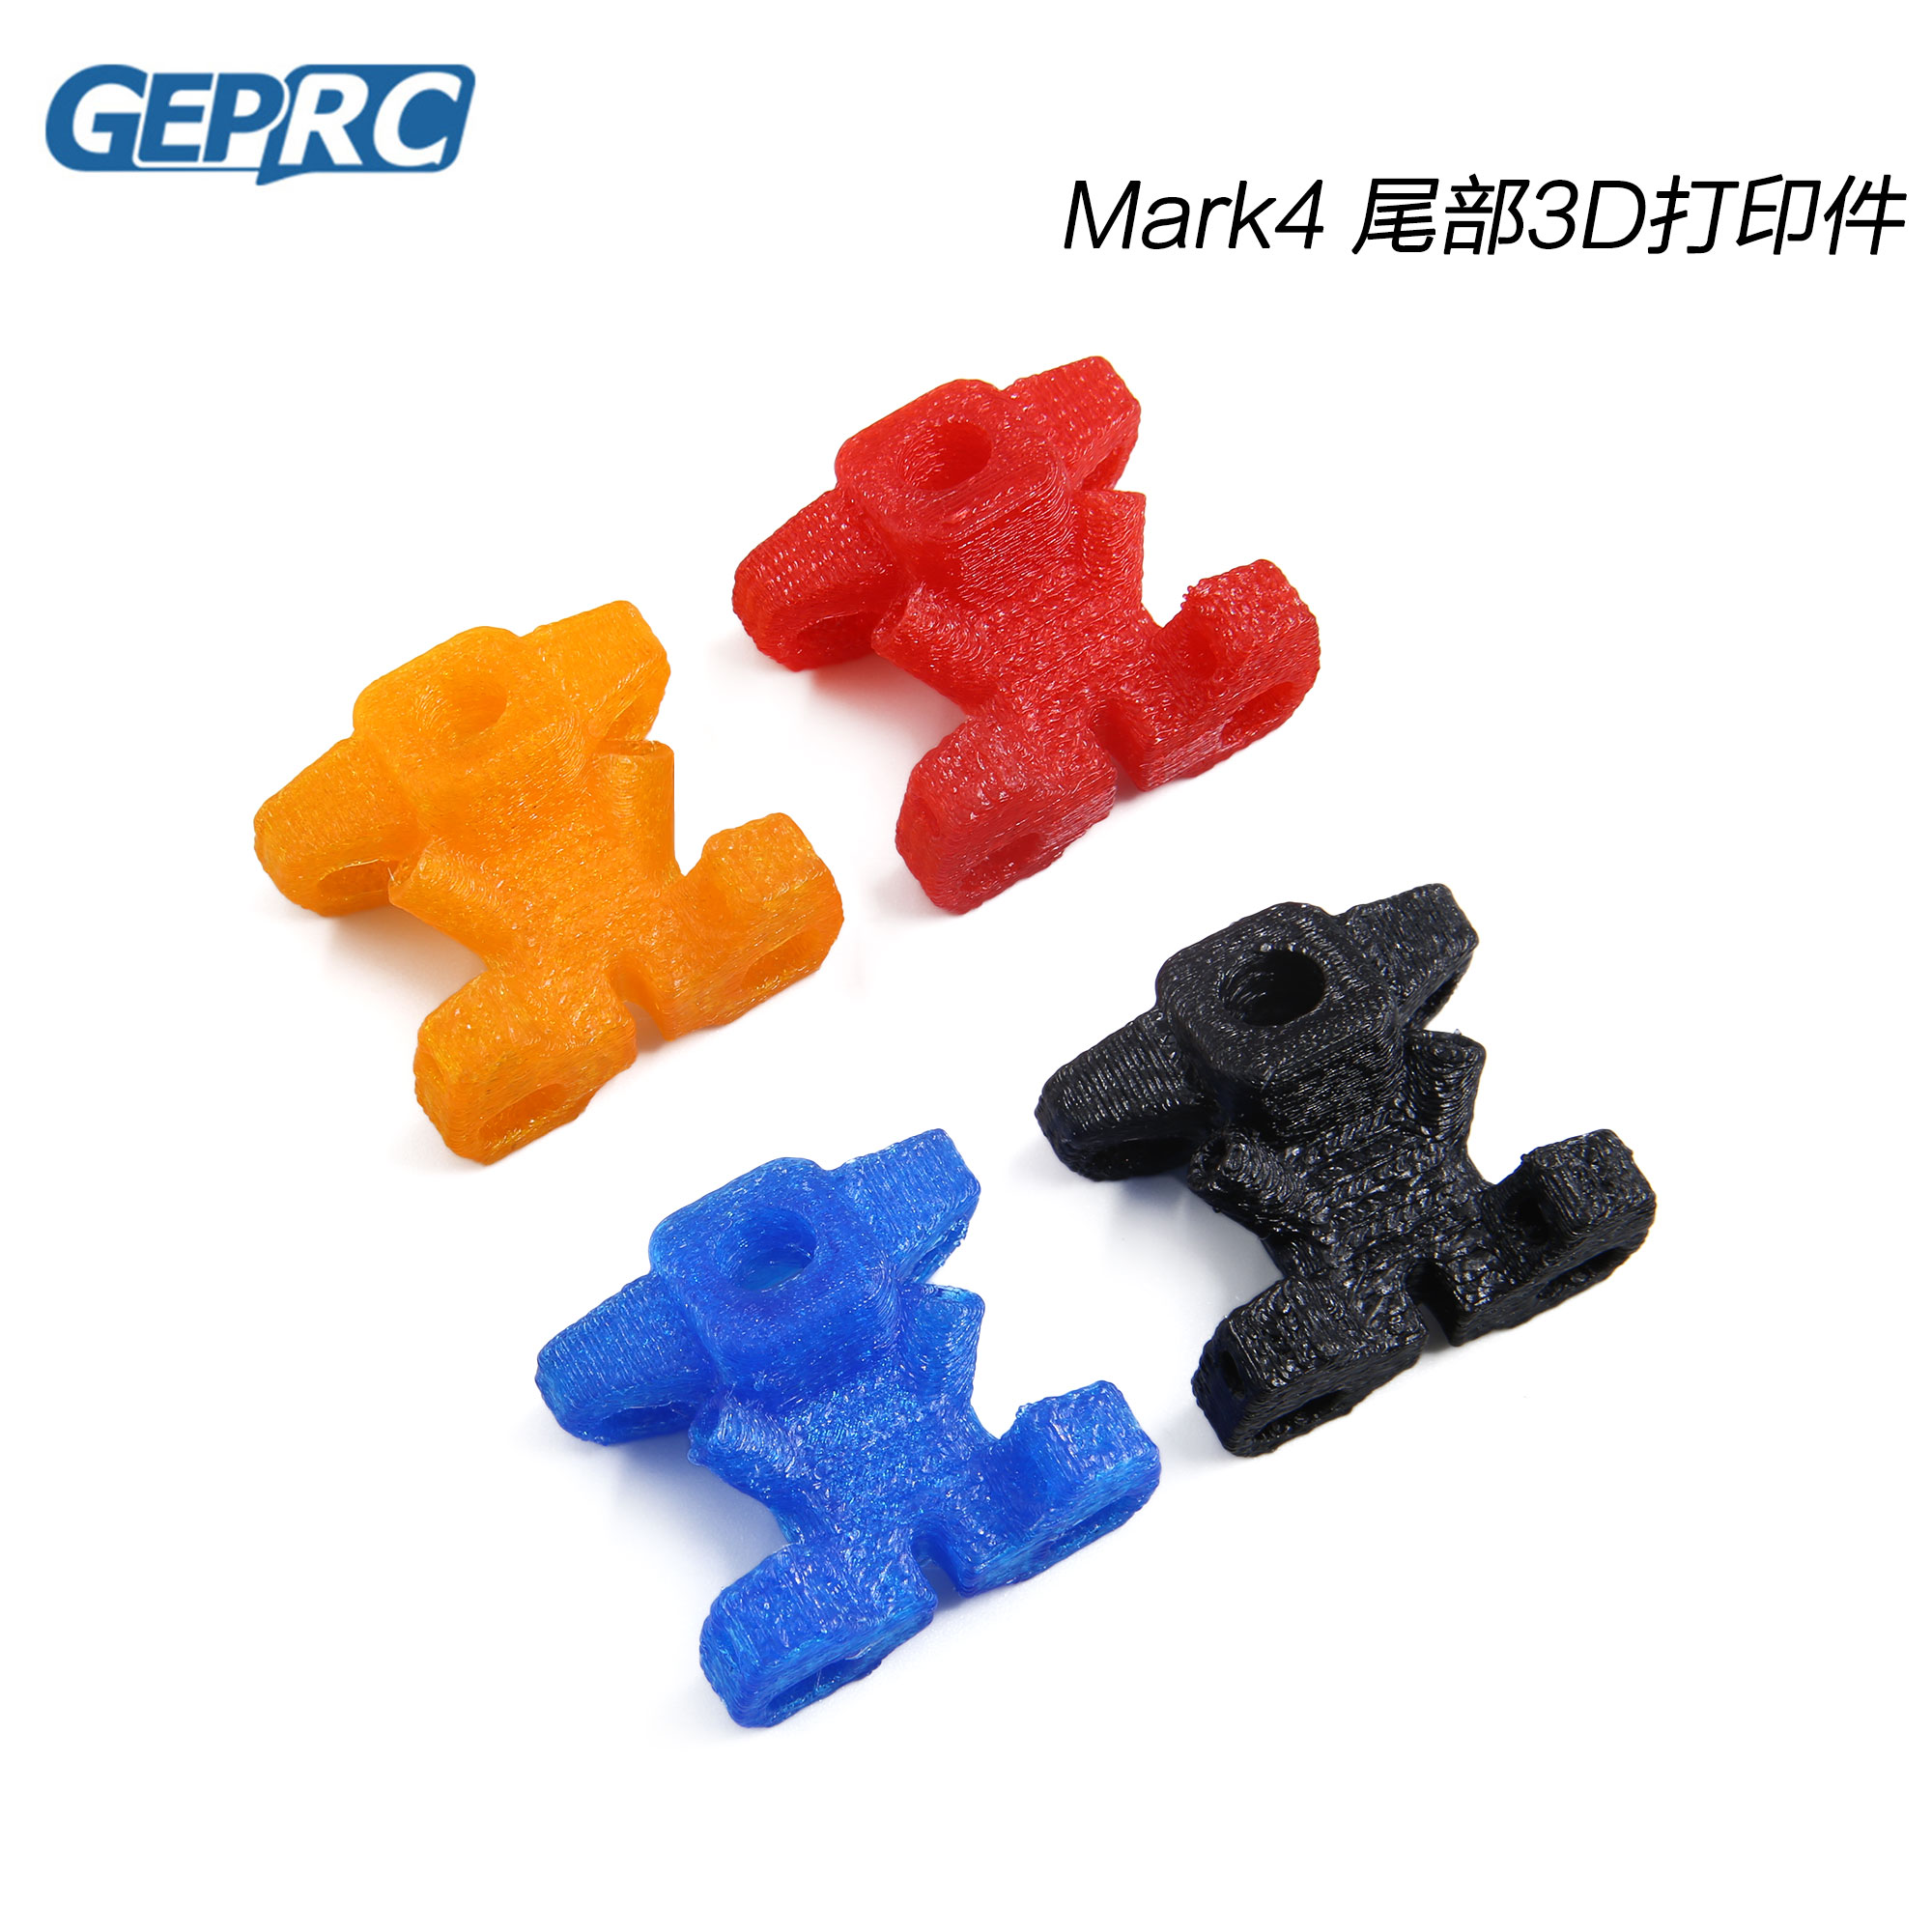 Red TPU 3D Print Rack Tail Antenna Mount 3D Printing Accessories for GEP-Mark4 Frame Kit FPV Racing Drone